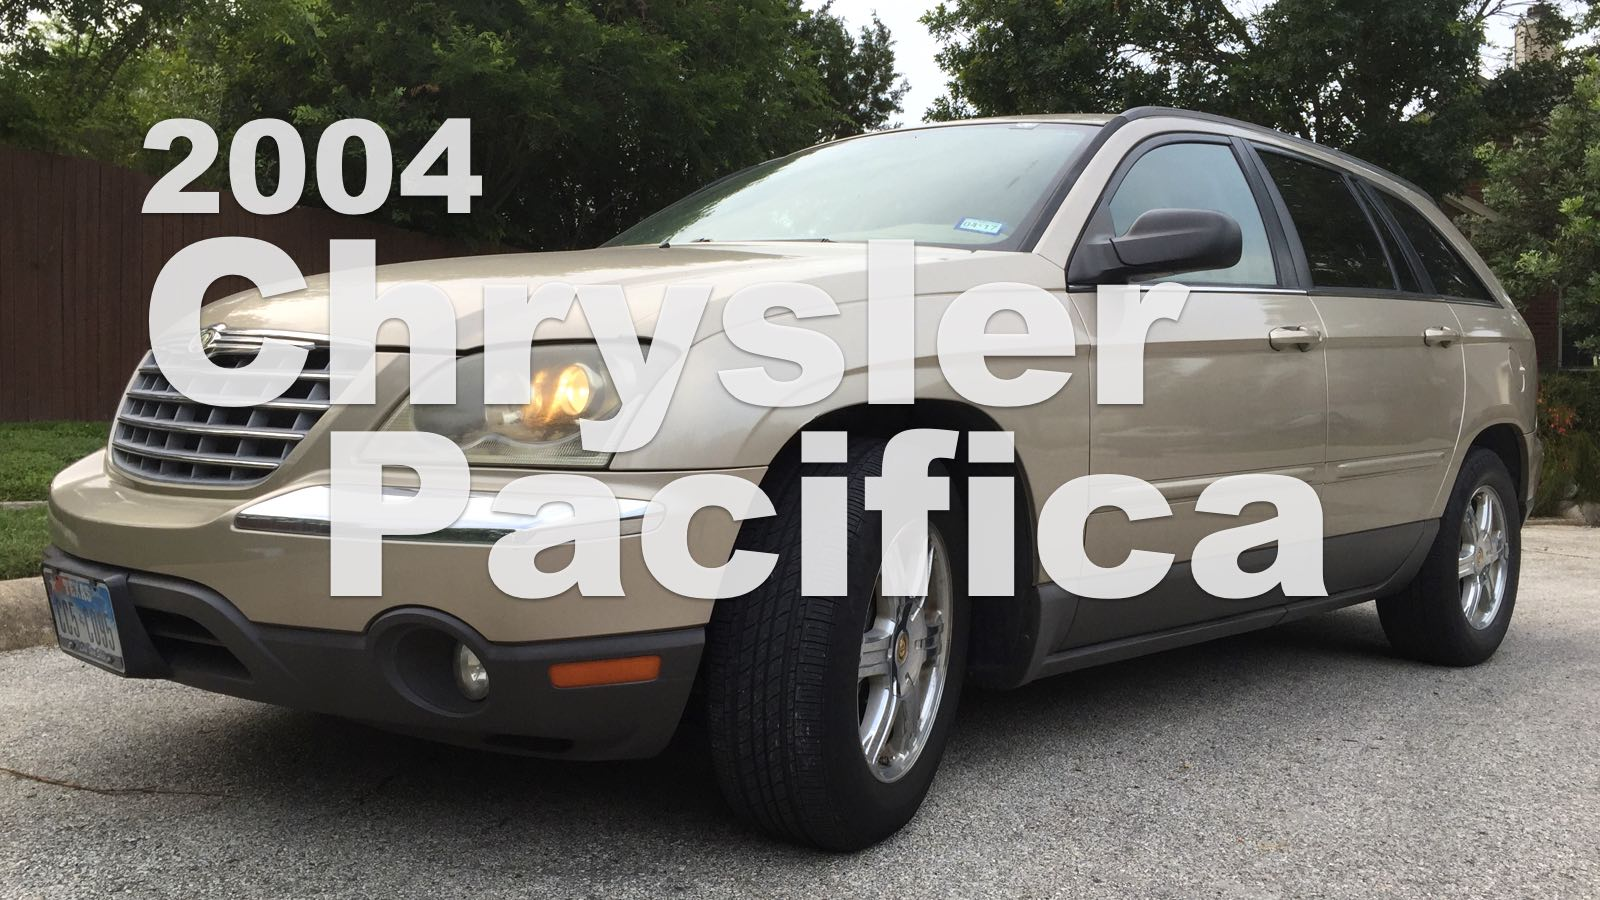 2004-Chrysler-Pacifica-cover